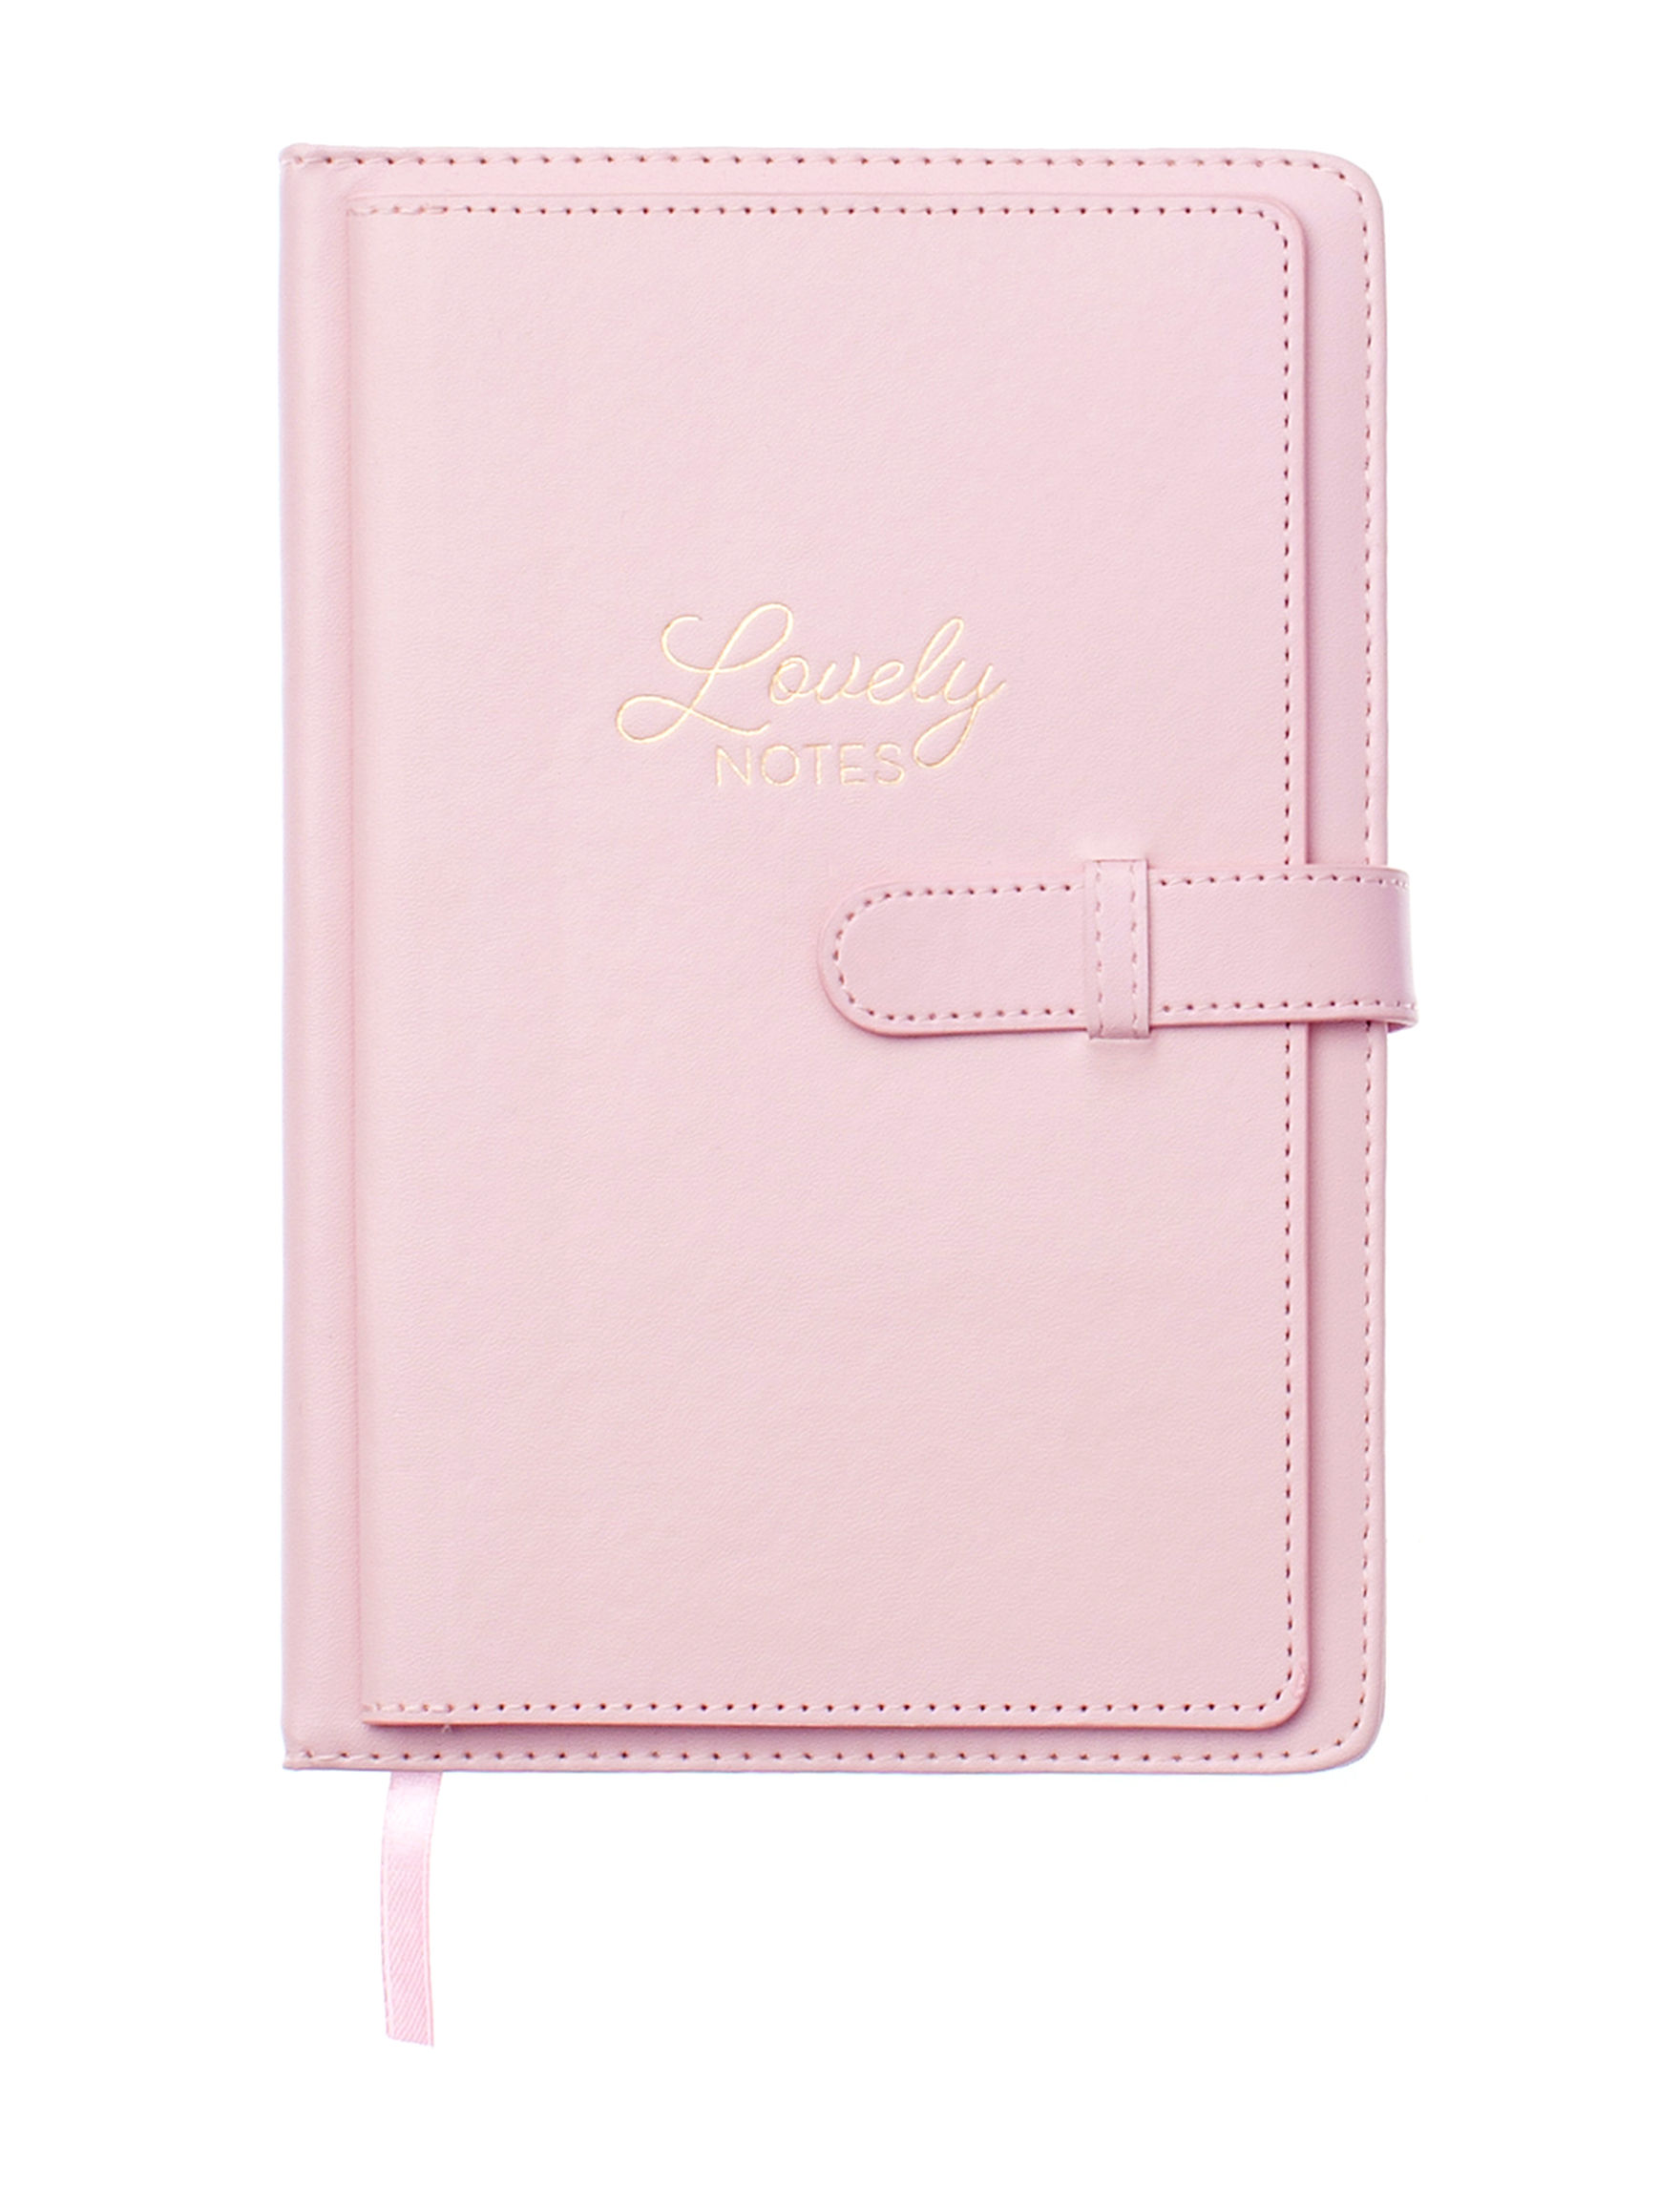 Tri Coastal Pink Journals & Notepads School & Office Supplies